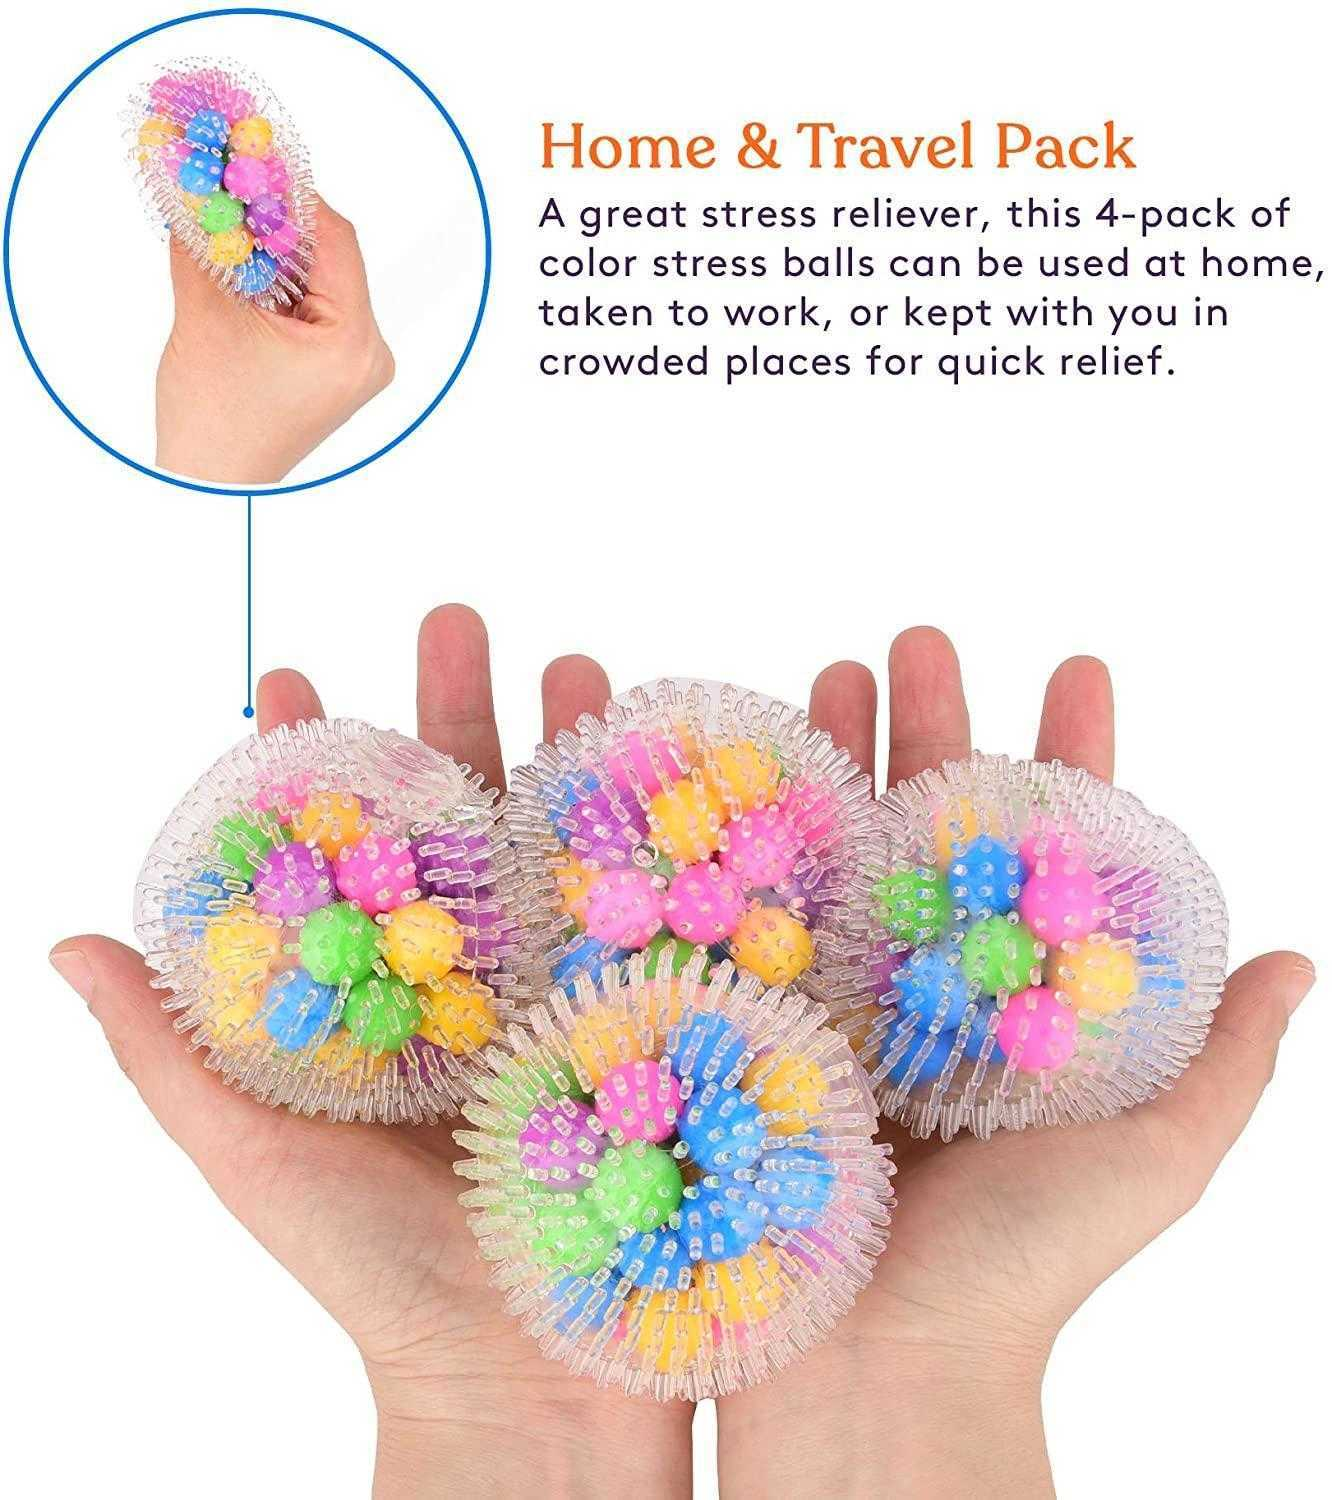 DHL hot DNA Squish Stress Ball 4-Pack Squeeze Color Sensory Toy Relieve Tension Home Travel andfree Office Use Fun for Kids Adults FY9409